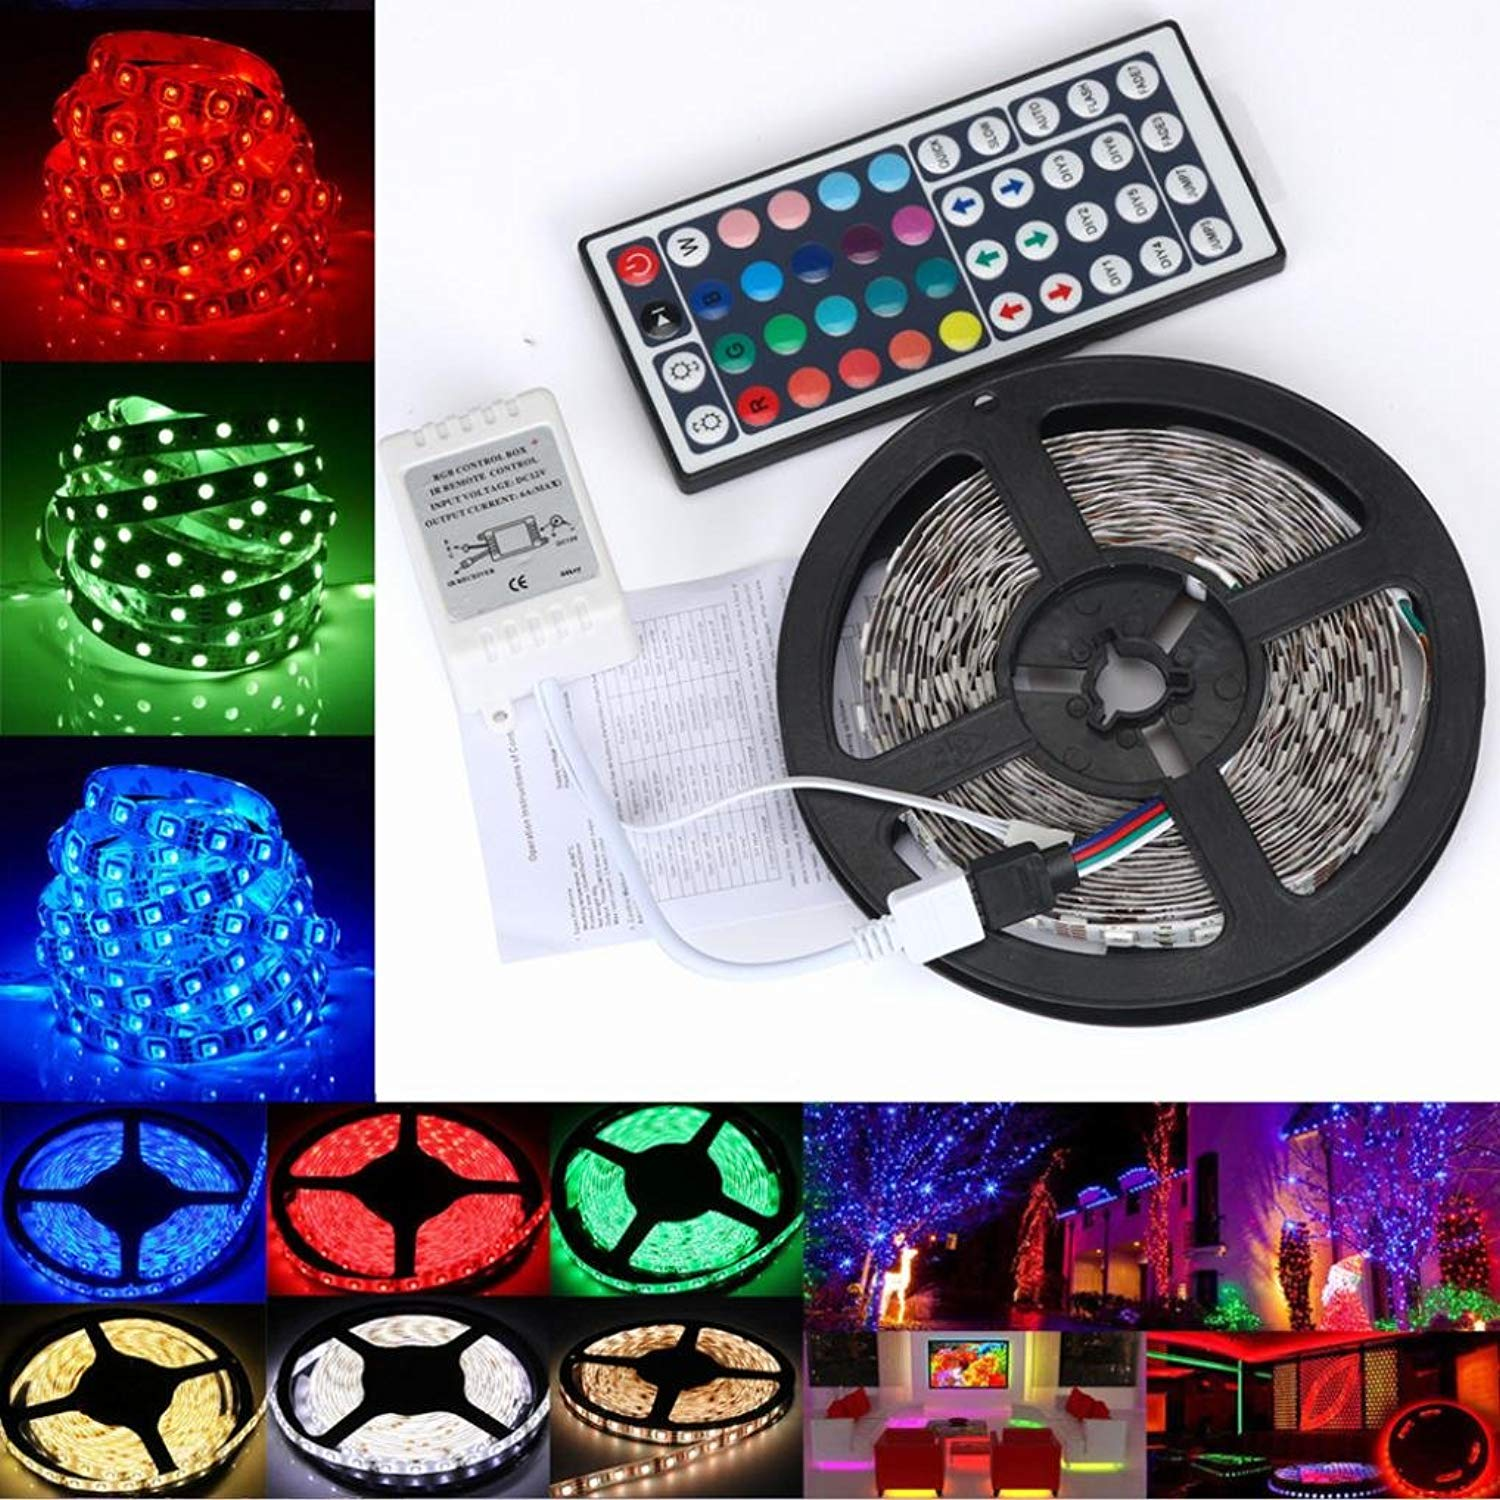 Cheap led strip lights rgb find led strip lights rgb deals on line get quotations creazy 5m 3528 rgb led strip strip strip strip lights smd lights string lights aloadofball Gallery